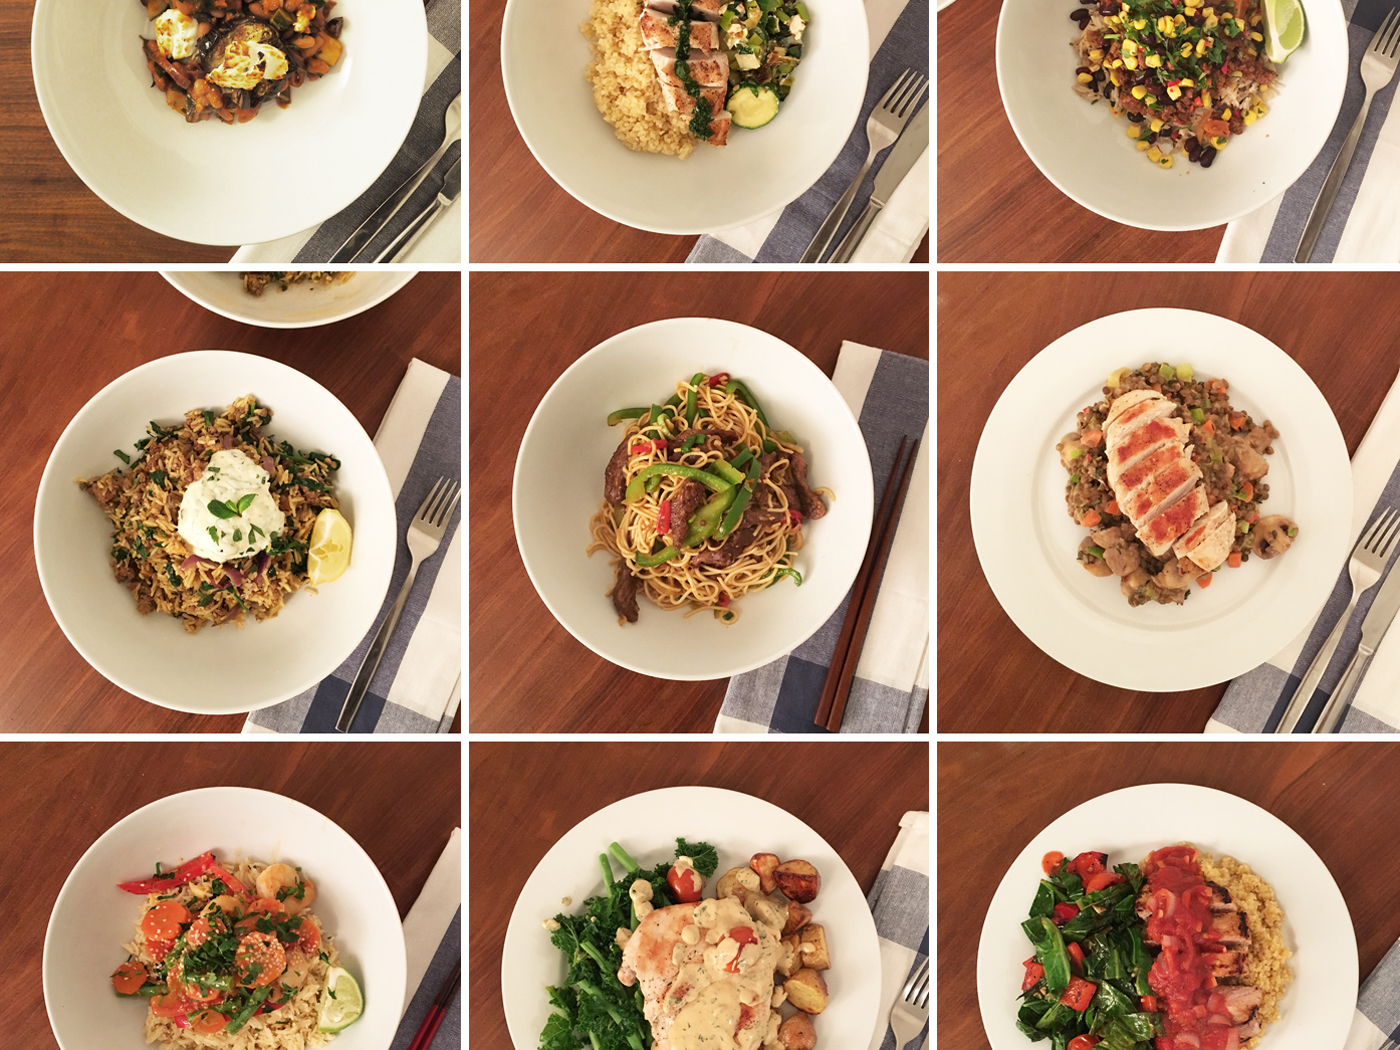 How Much Would Meal Kit Delivery Service Hellofresh  Cost